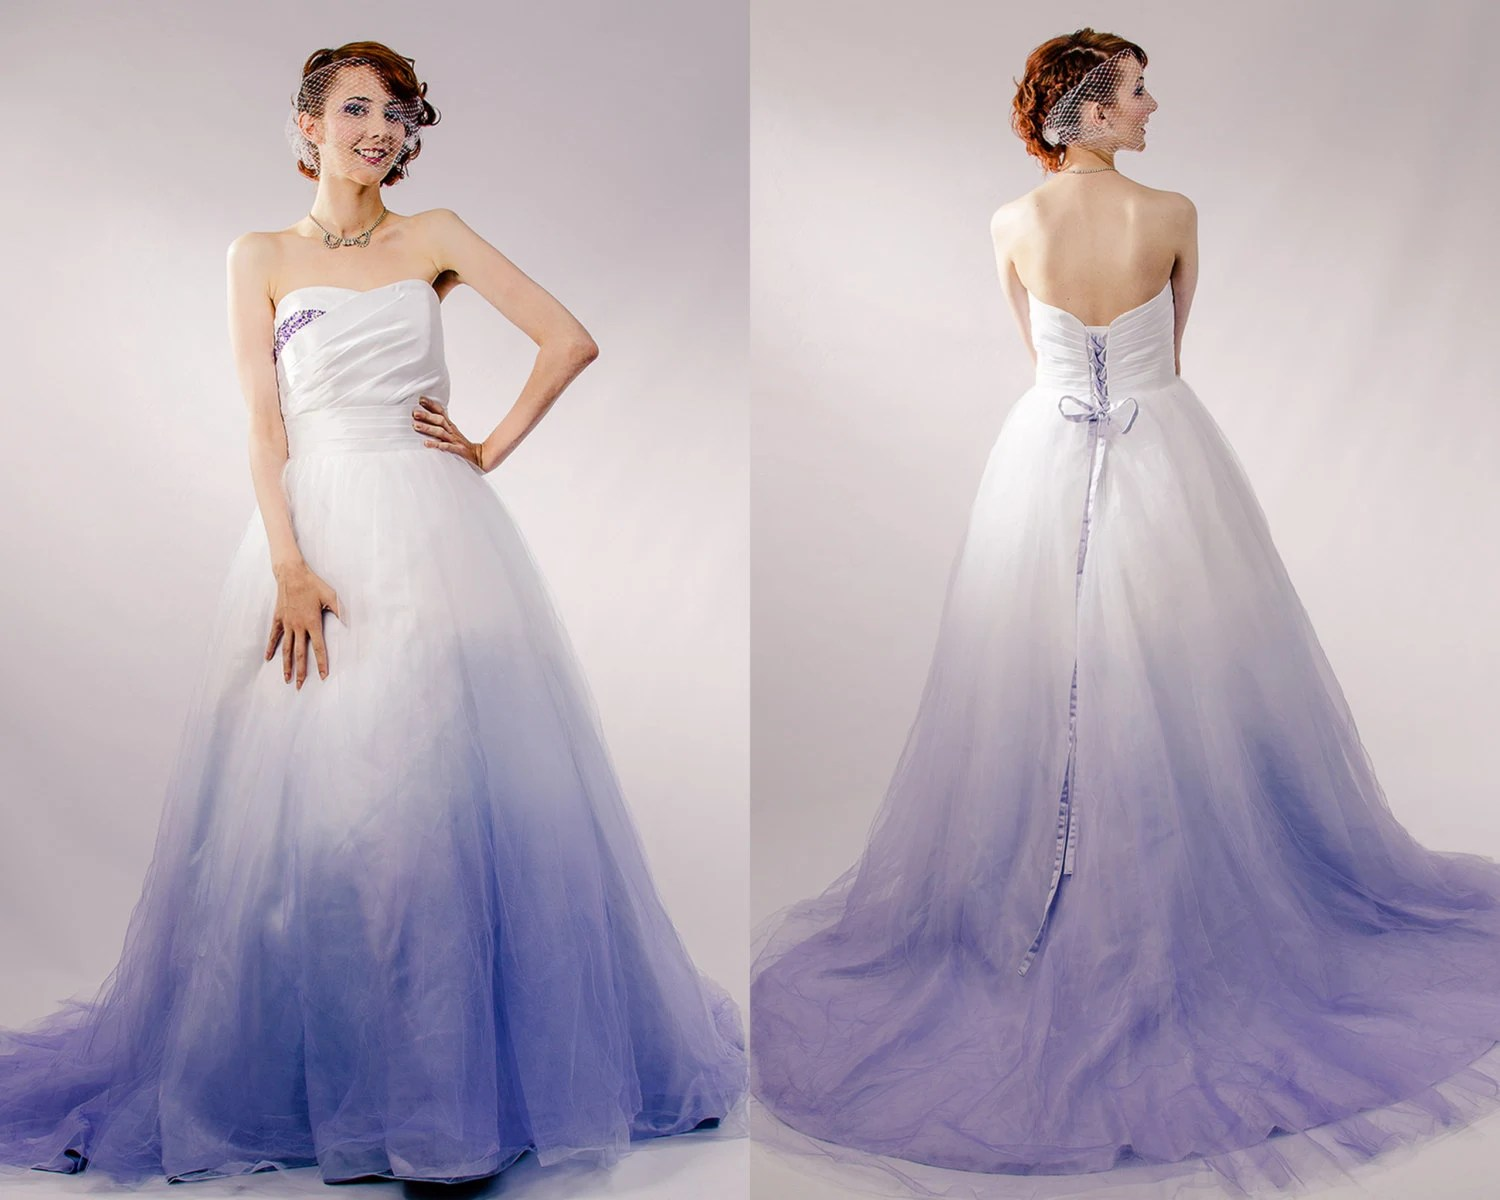 ombre wedding dress wedding dresses with color Dip Dyed Wedding Dress Purple Ombre Wedding Dress Couture Wedding Gown Colored Wedding Dress